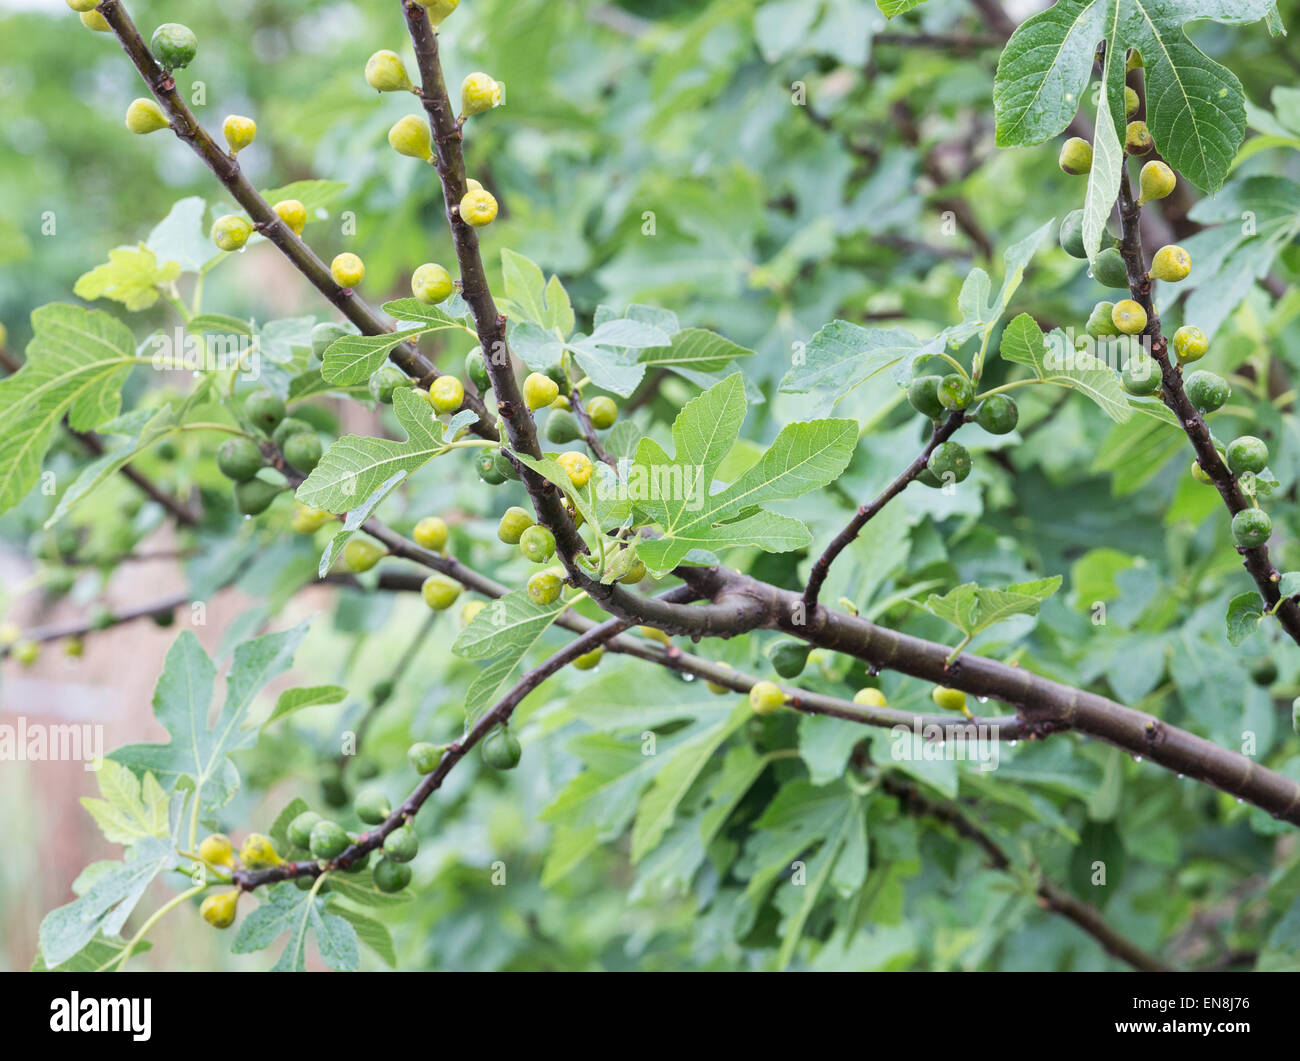 Fig tree with ripening fruits - Stock Image